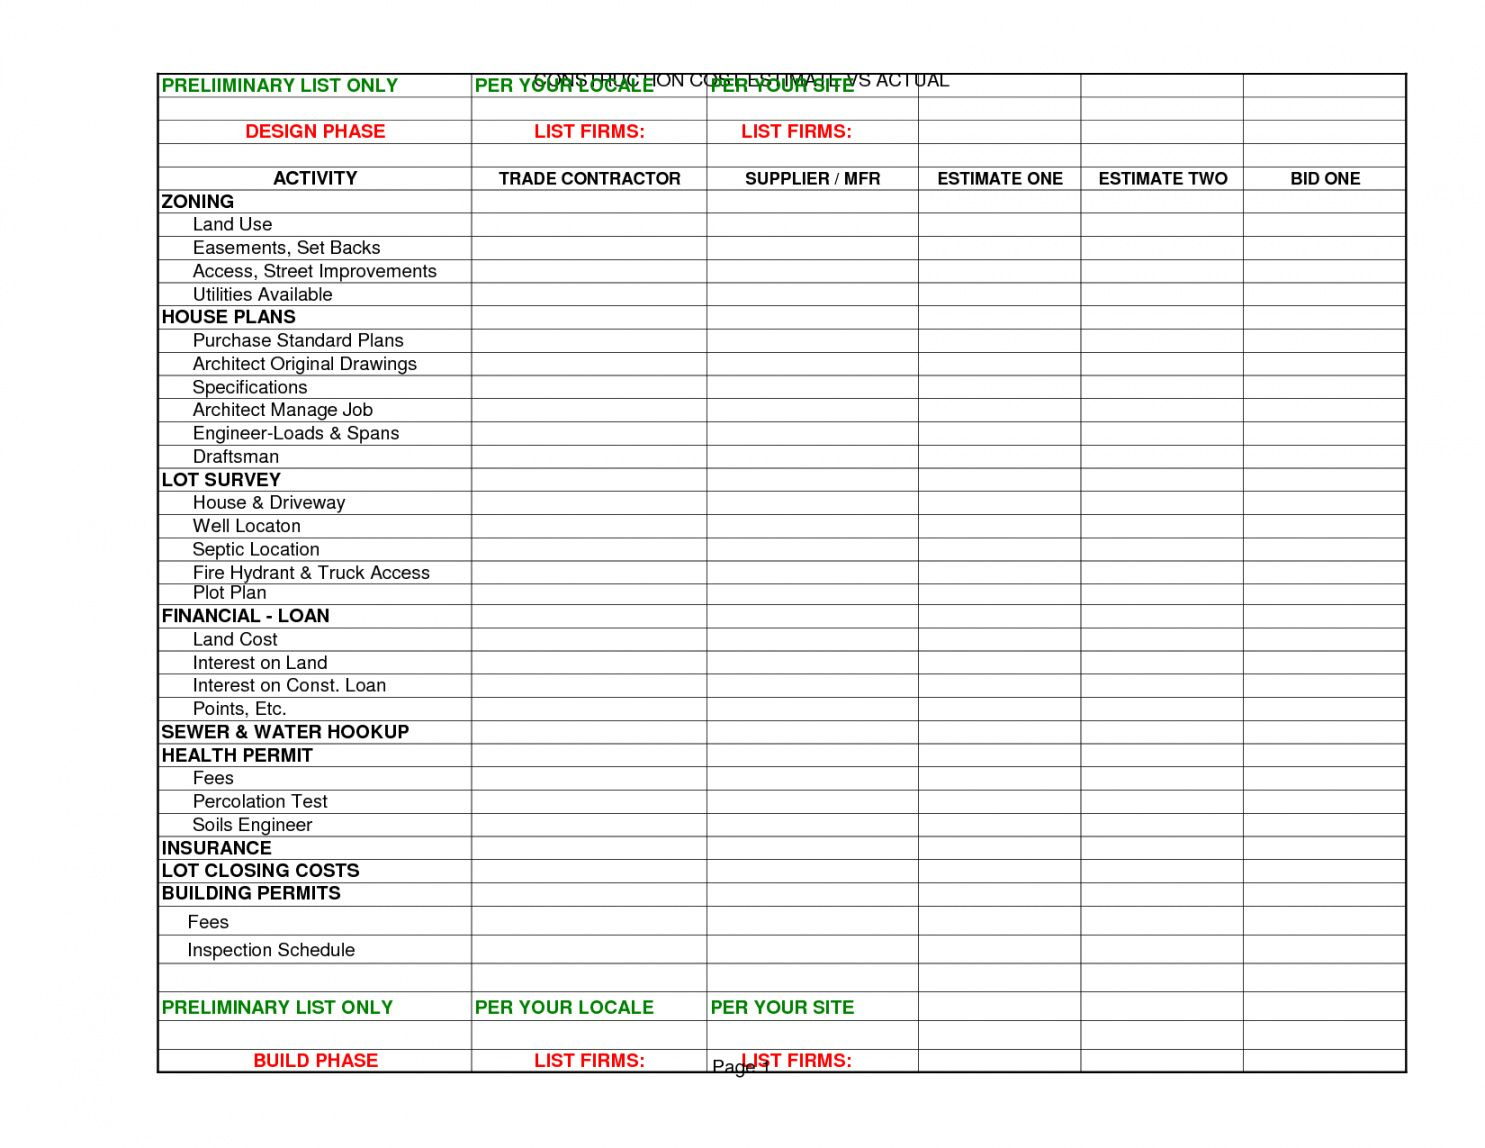 Sample Interior Design Project Spreadsheet Excel Worksheet